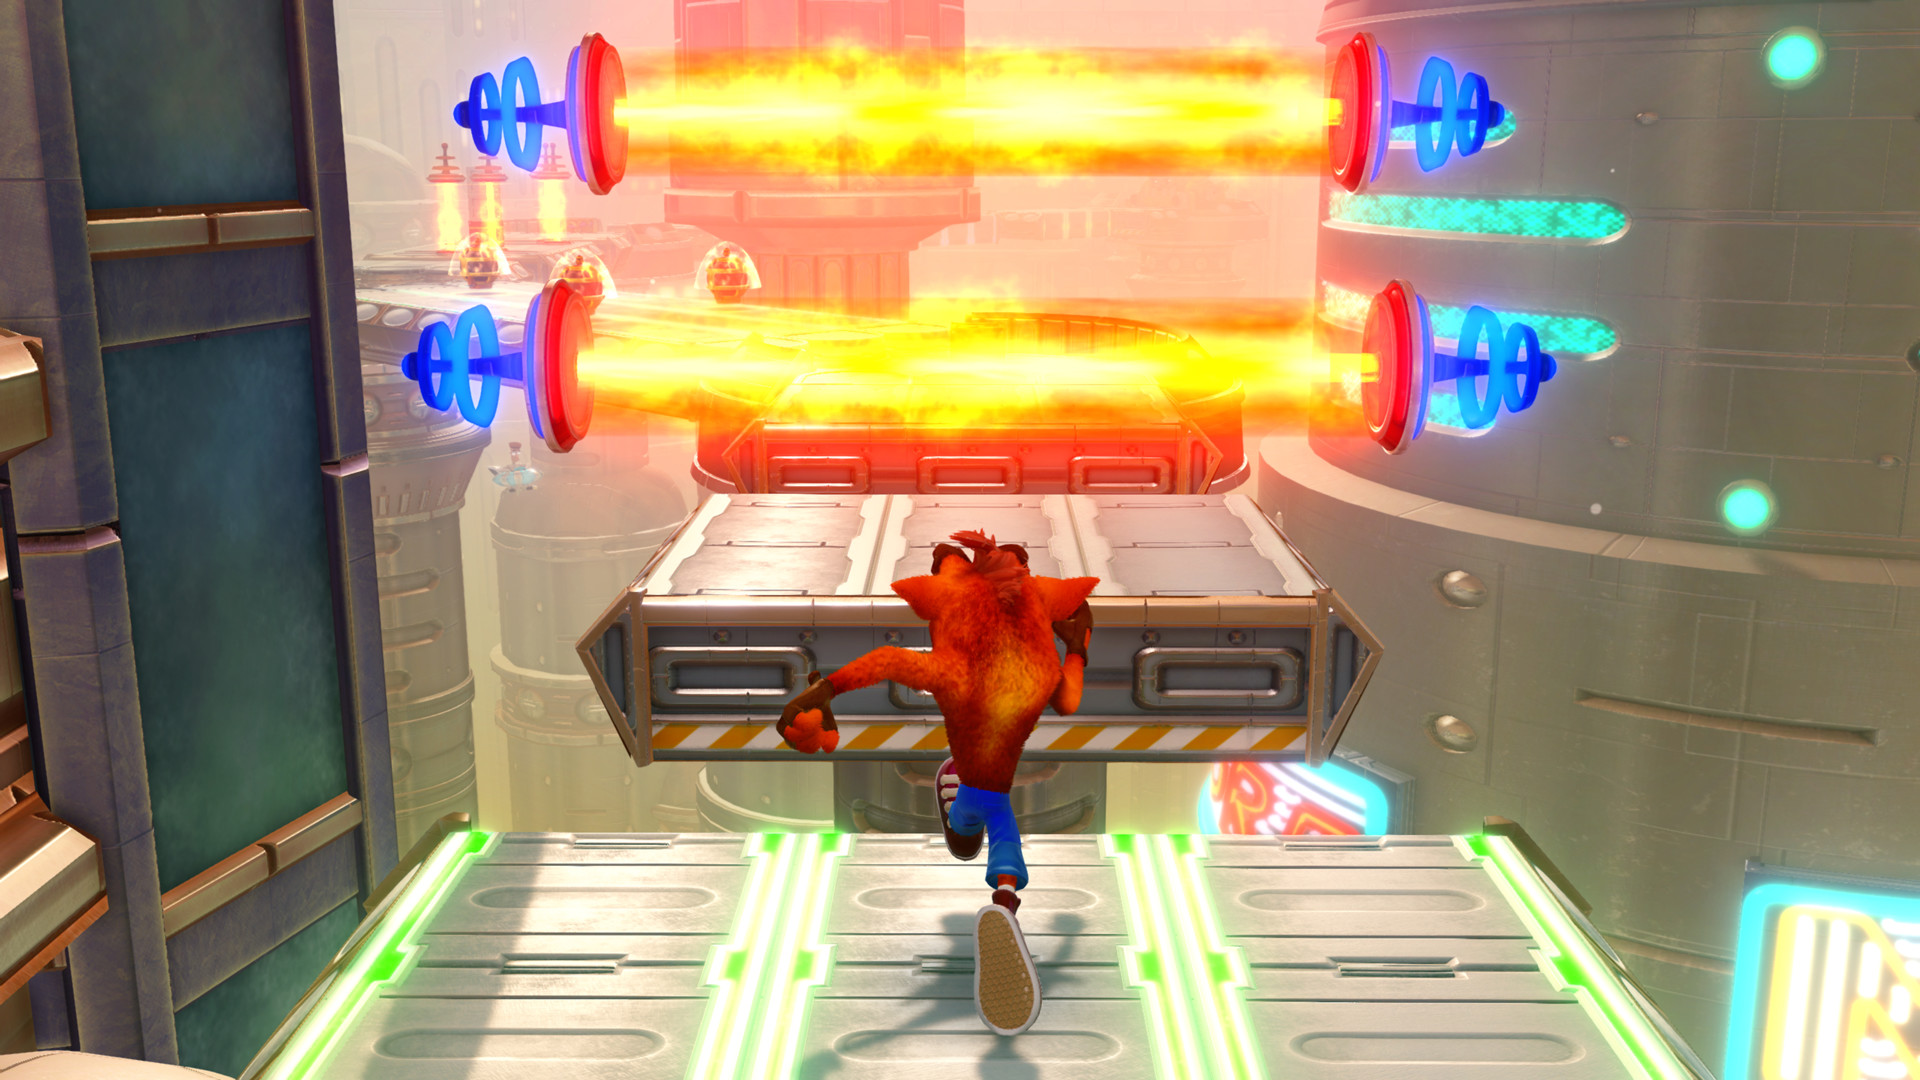 2707-crash-bandicoot-n-sane-trilogy-gallery-3_1